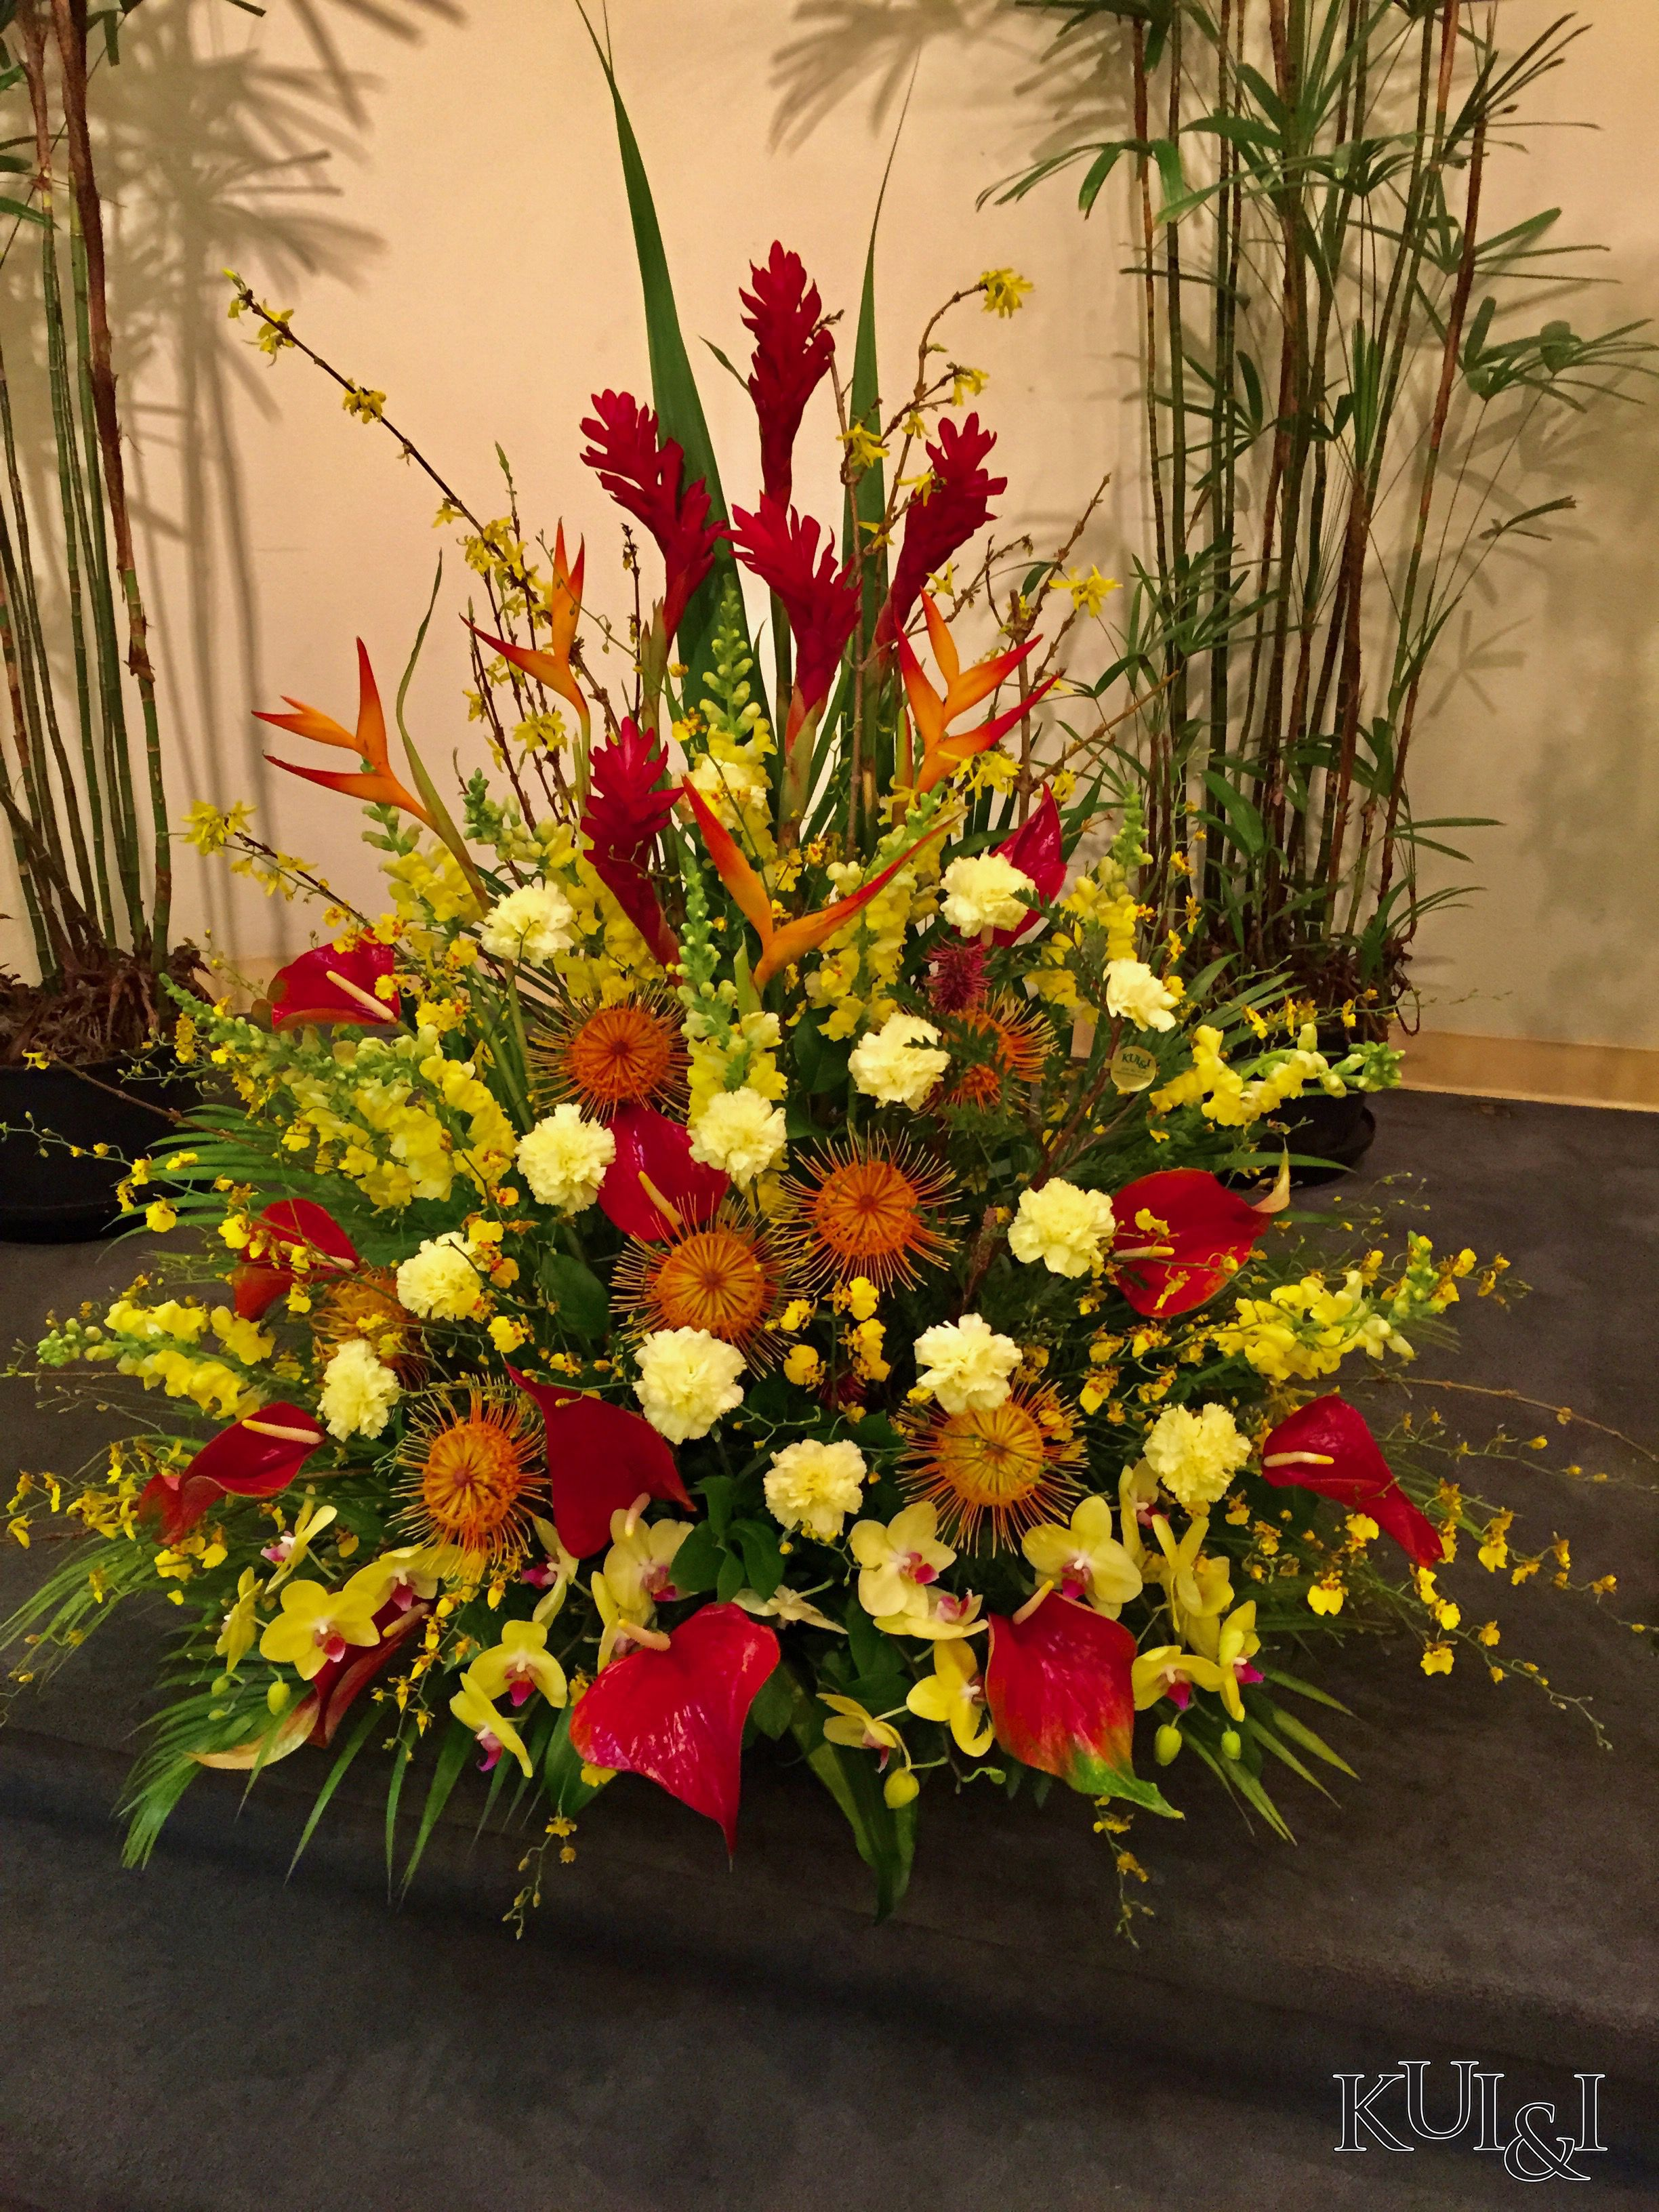 Tropical Sympathy Arrangement Kui & I Florist, Llc Hilo, Hawaii